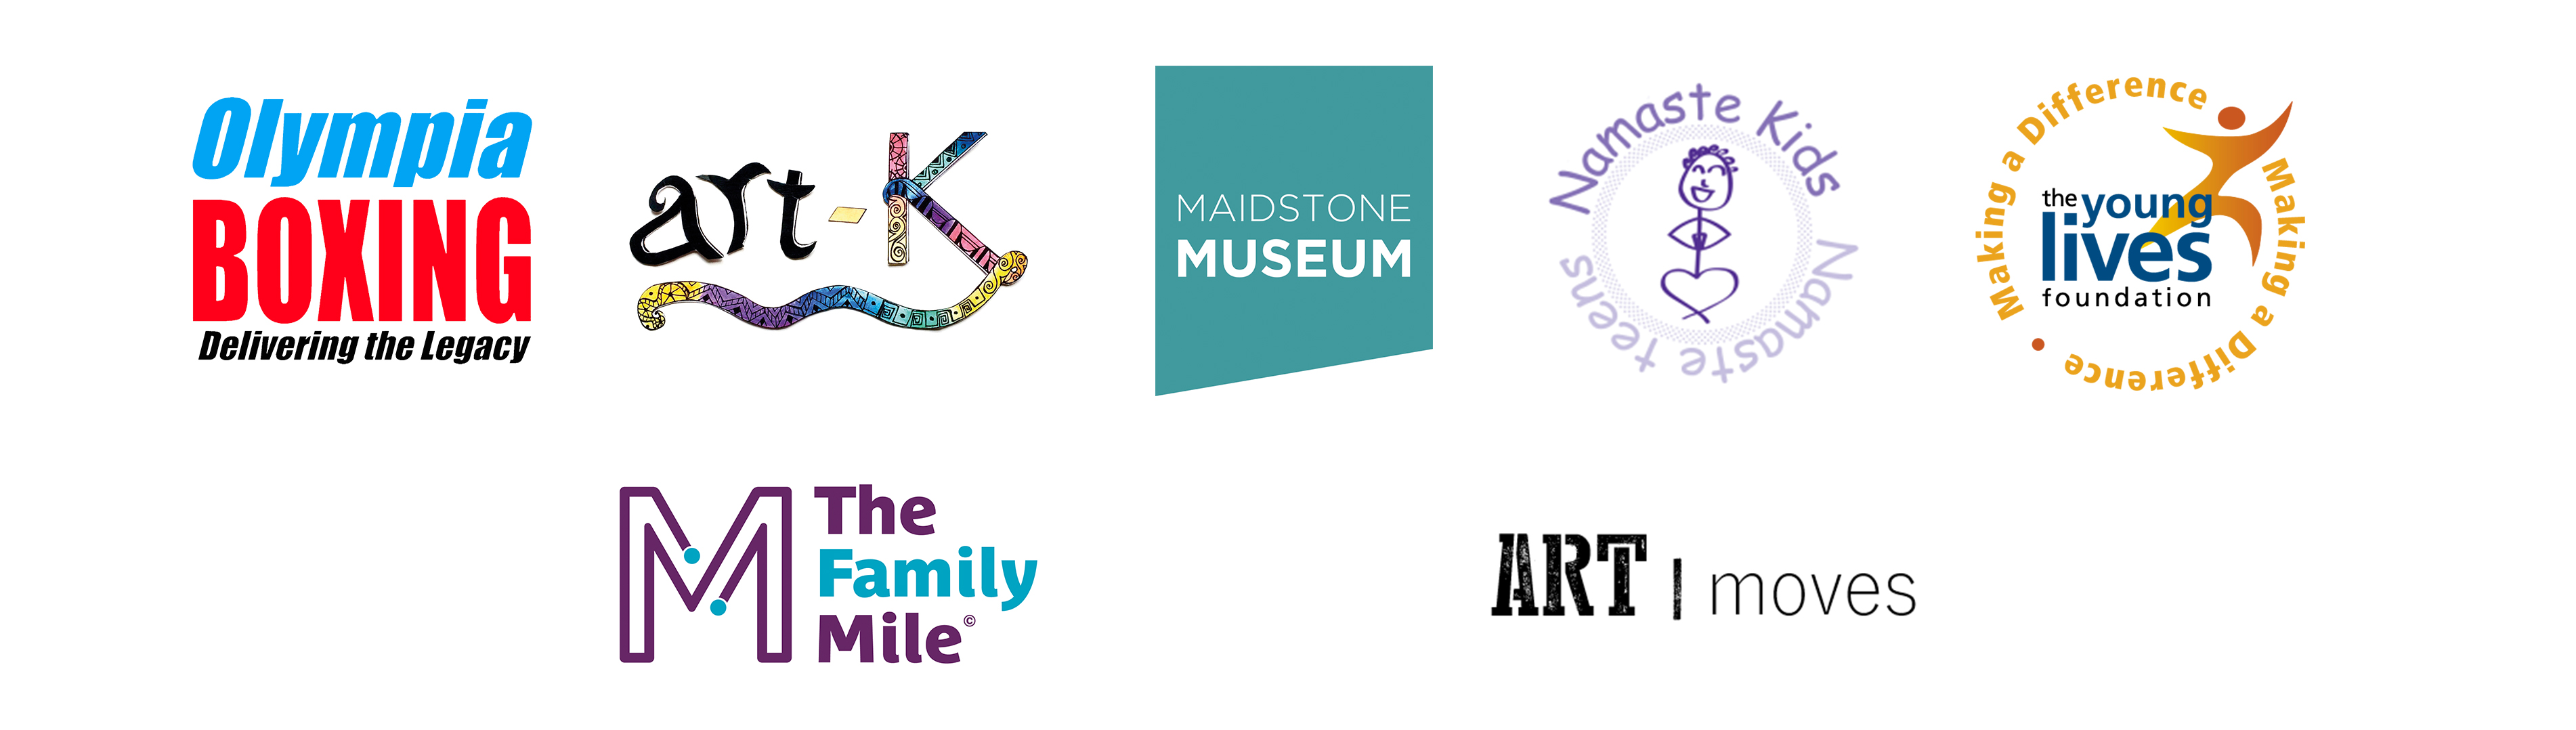 Event Partner Logos - Olympia Boxing, Art-K Maidstone, Maidstone Museum, Namaste Kids, Art Moves, The Family Mile and Young Lives Foundation